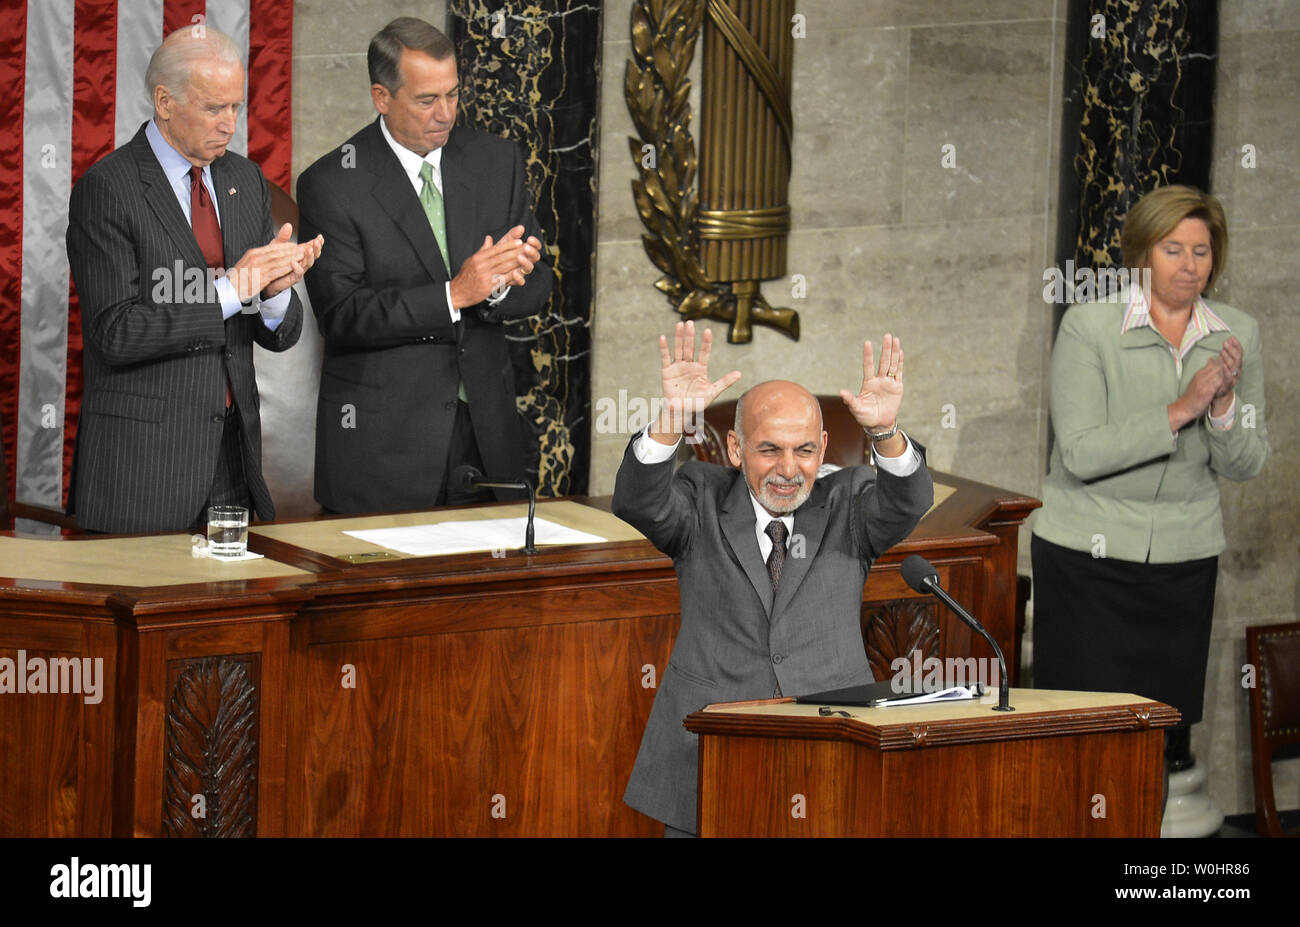 Afghanistan President Ashraf Ghani acknowledges applause as he makes remarks to a joint meeting of Congress, as Vice President Joe Biden (L) and House Speaker John Boehner (R-OH) listen, March 25, 2015, in Washington, DC. Ghani is on a multi-day visit to Washington and has received assurances from President Obama to halt the withdrawal of U.S. troops to provide more time for training Afghan forces.              Photo by Mike Theiler/UPI - Stock Image